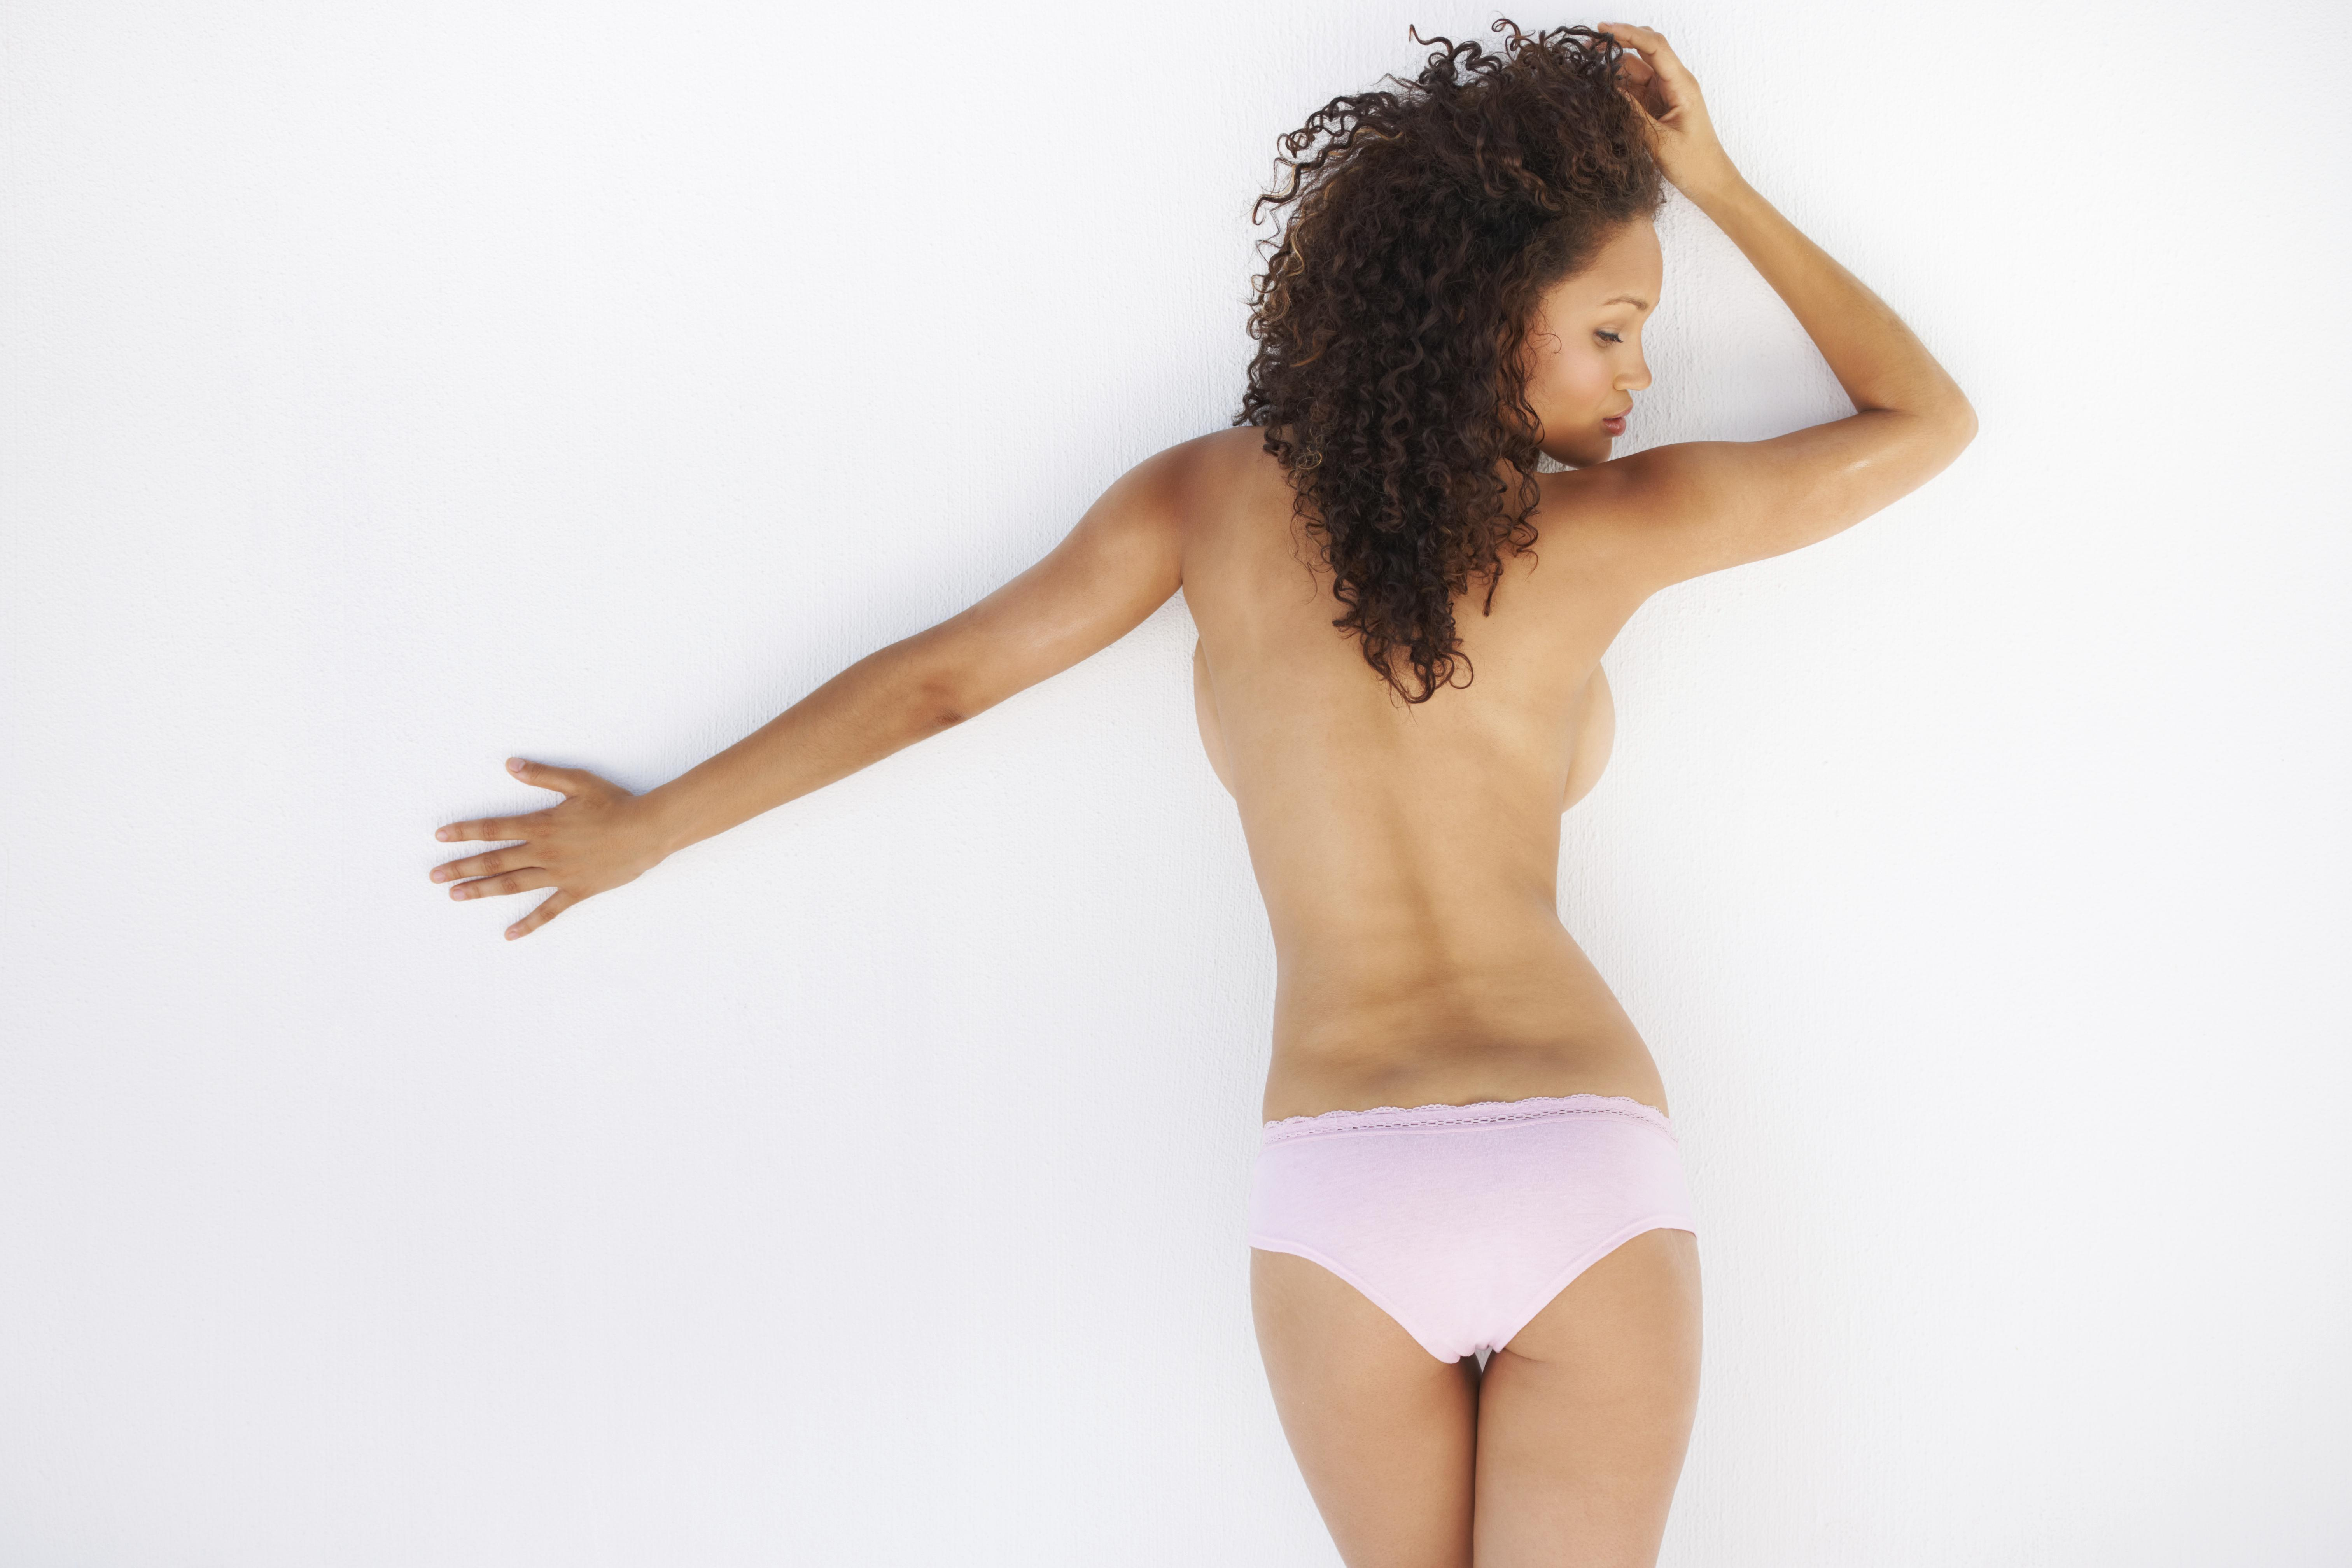 Rear view of a topless young woman leaning against a wall with her arm spread out